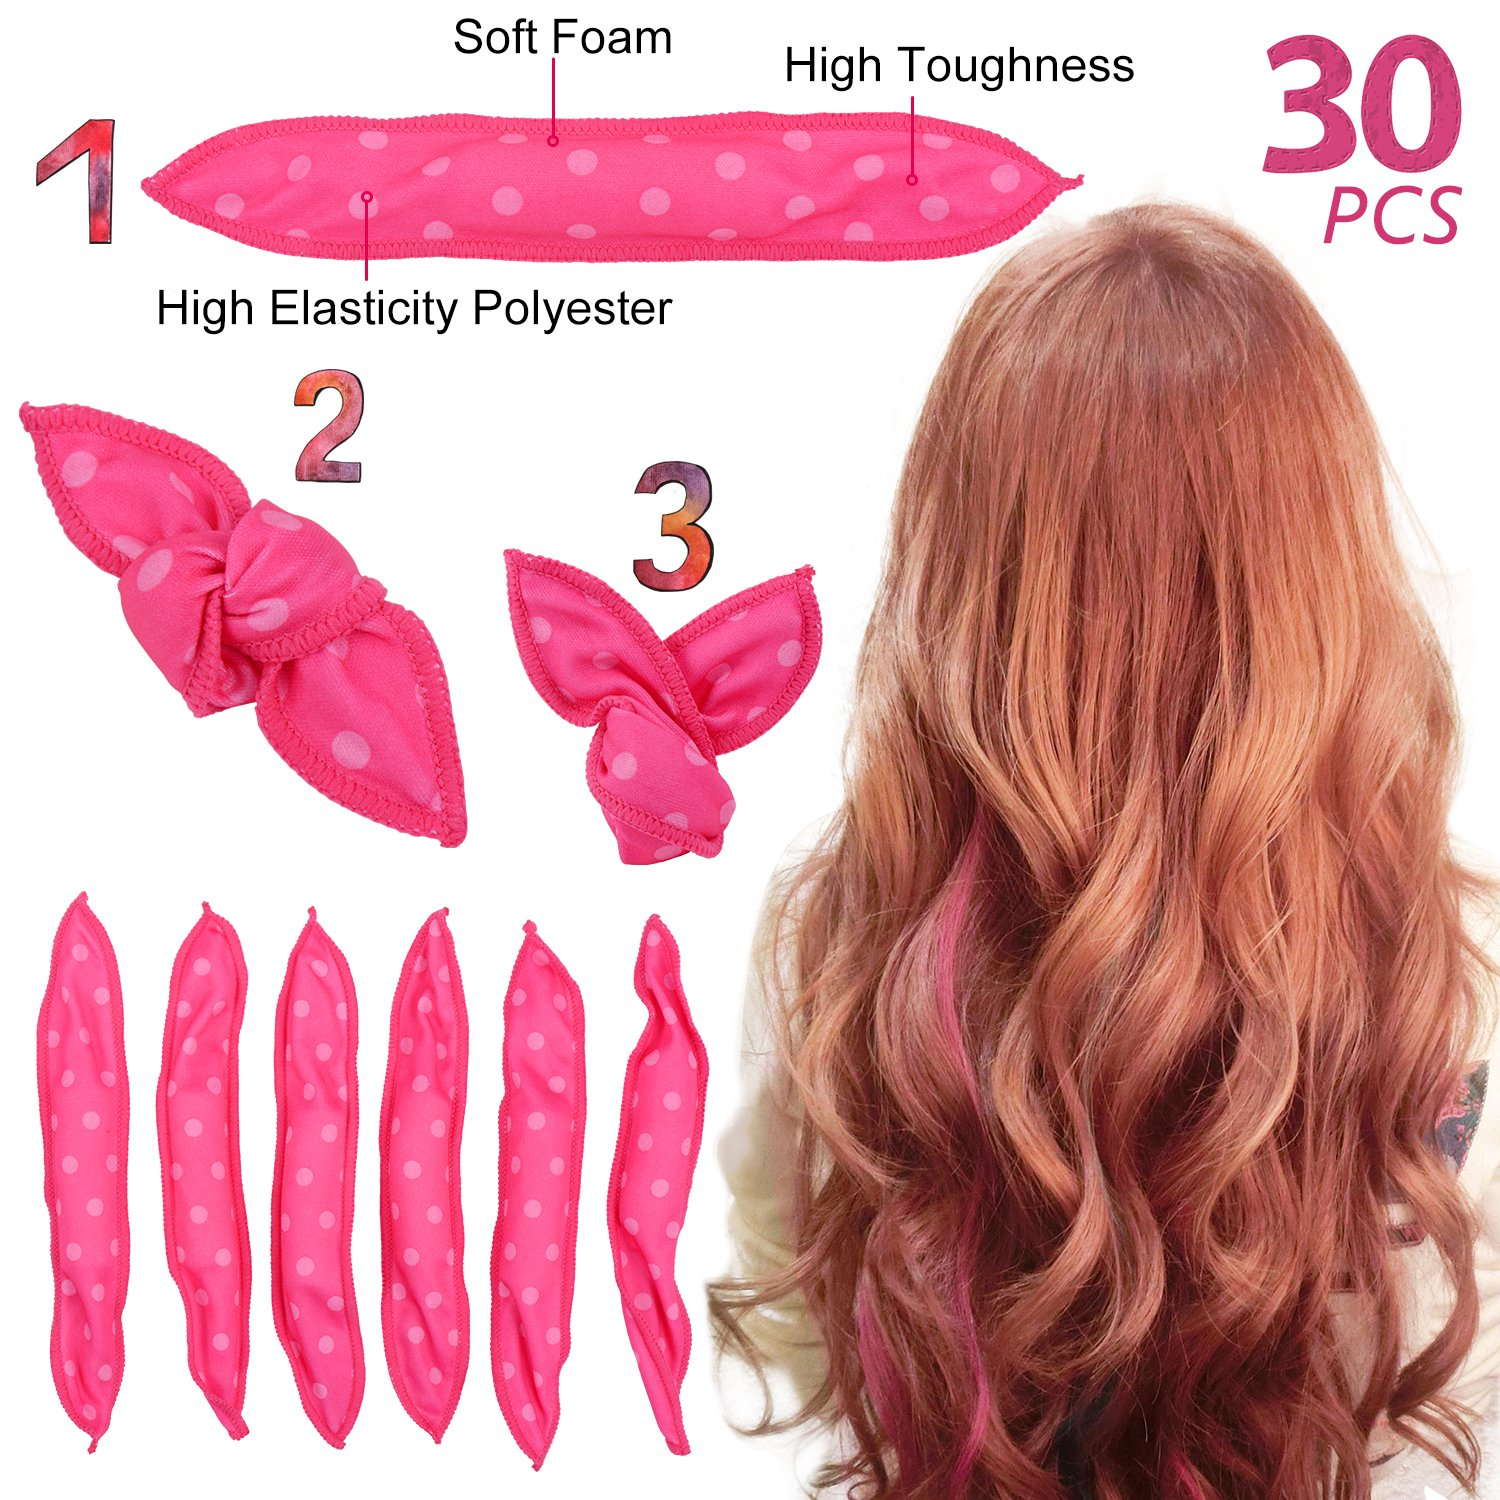 Ameauty Foam Hair Rollers for Long Medium Hair, No Heat, No Harm, Soft and Can be Used at Night for Save Time, Styling Tool For Women and Girl (30Pcs, Rose)